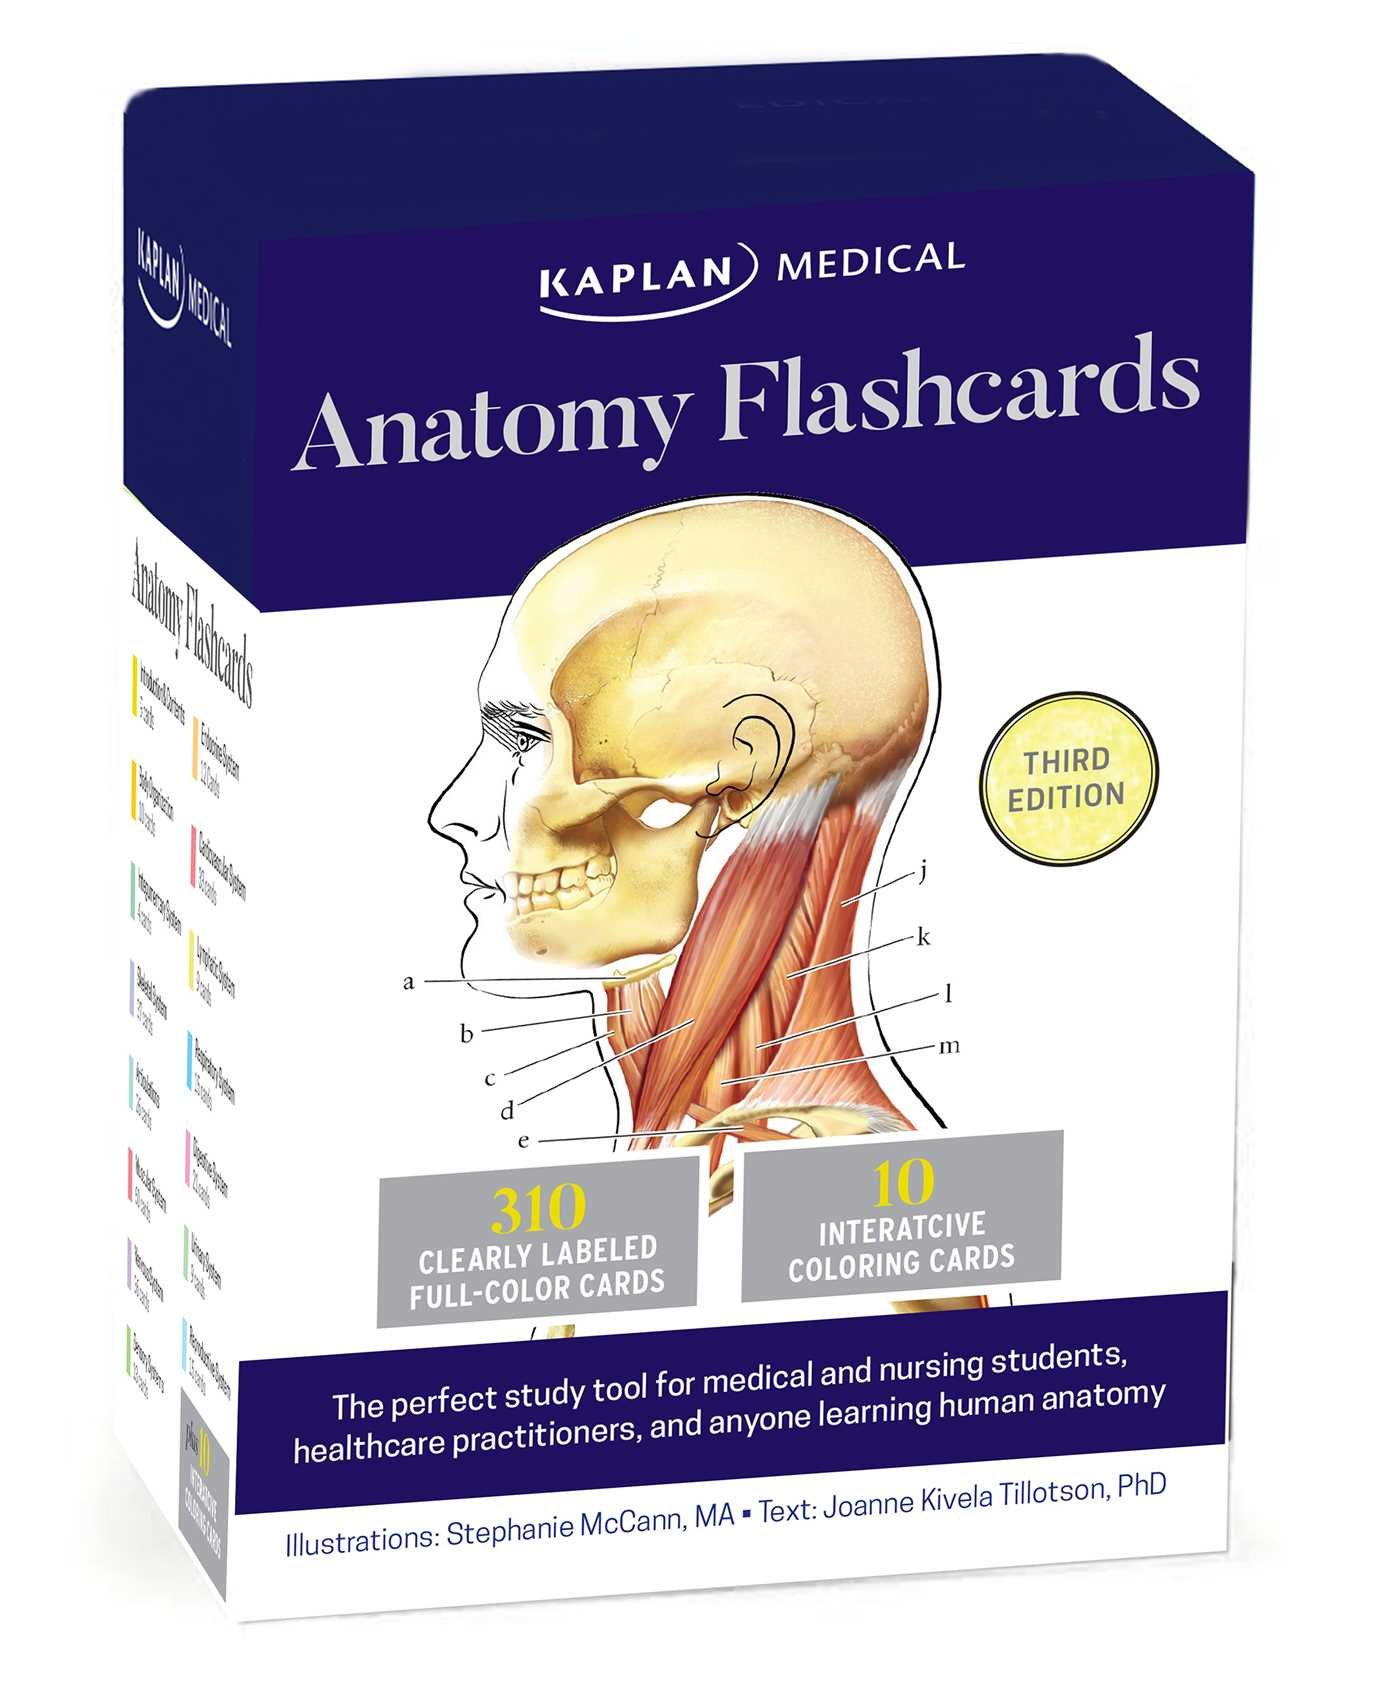 Anatomy Flashcards: 9781506223537: Medicine & Health Science Books ...